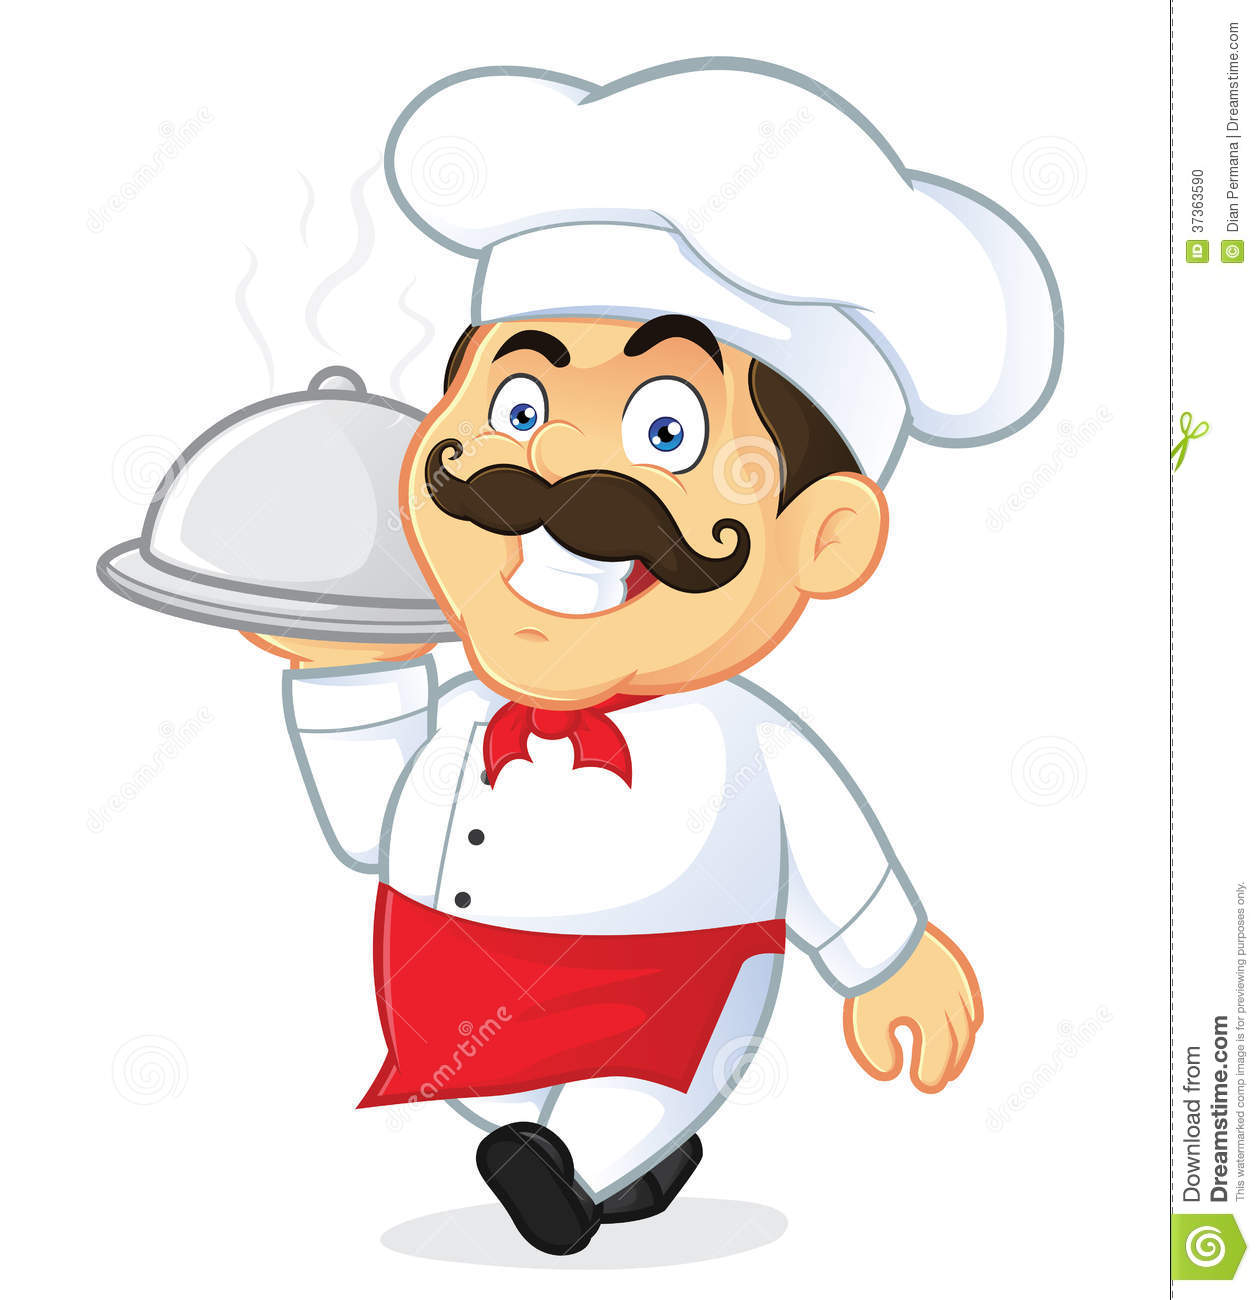 Catering chef clipart. Clipartfest file type